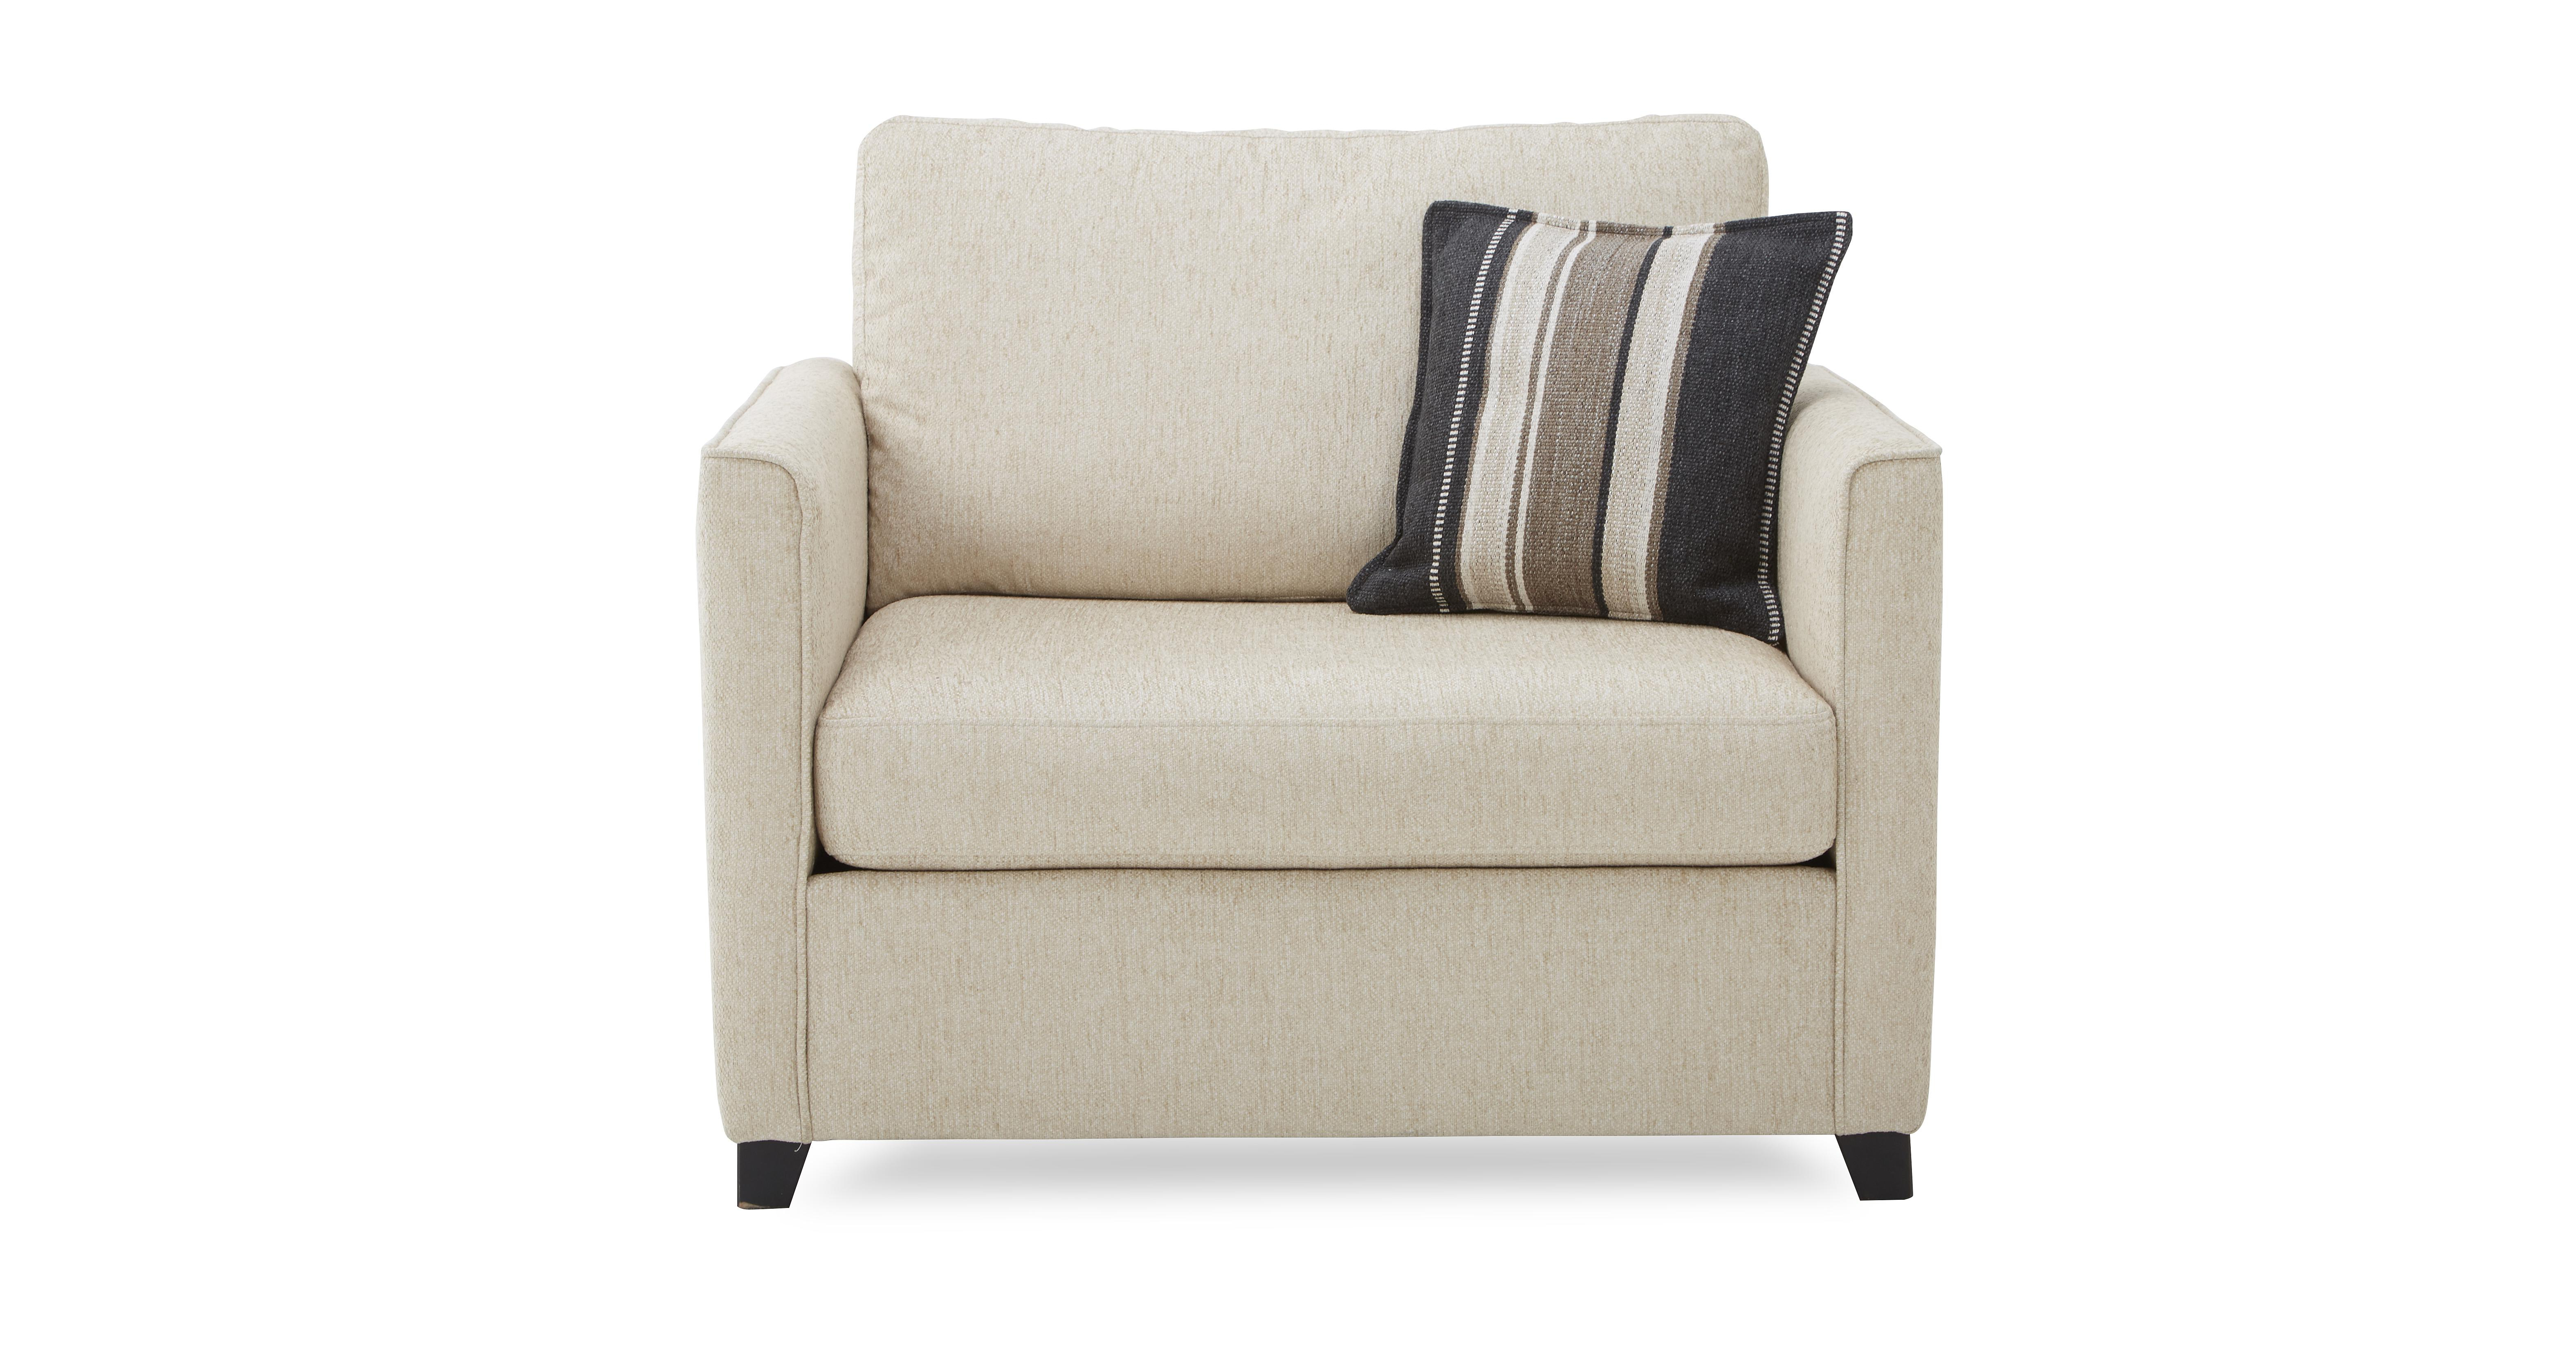 Most Recently Released Sofa Bed Chair And Its Benefits With Sofa Chairs (View 4 of 20)